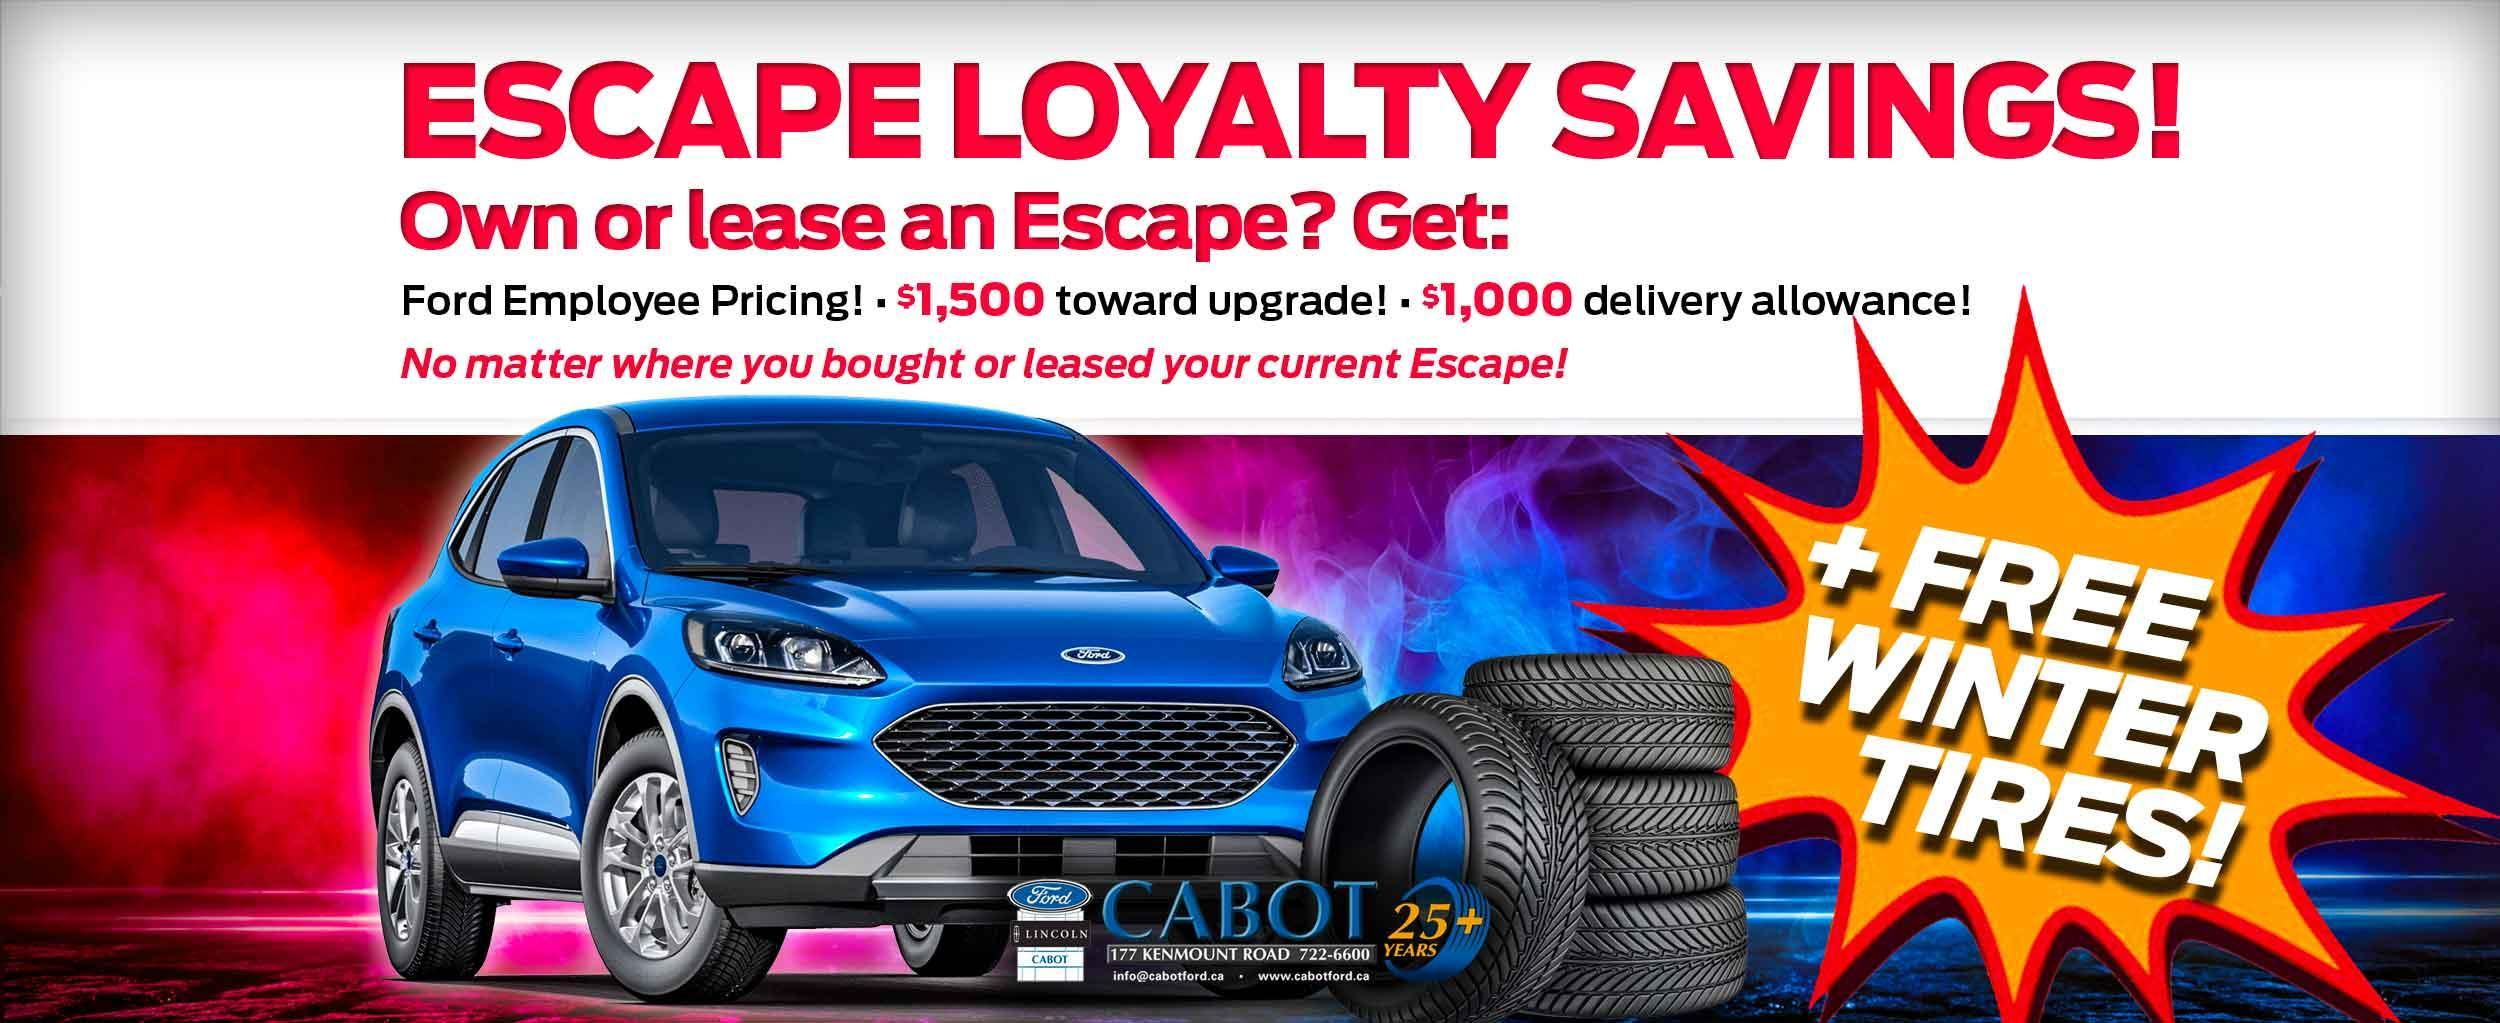 Renew your Escape and save big during our ESCAPE LOYALTY SAVINGS event, no matter where you bought or leased your current Escape!